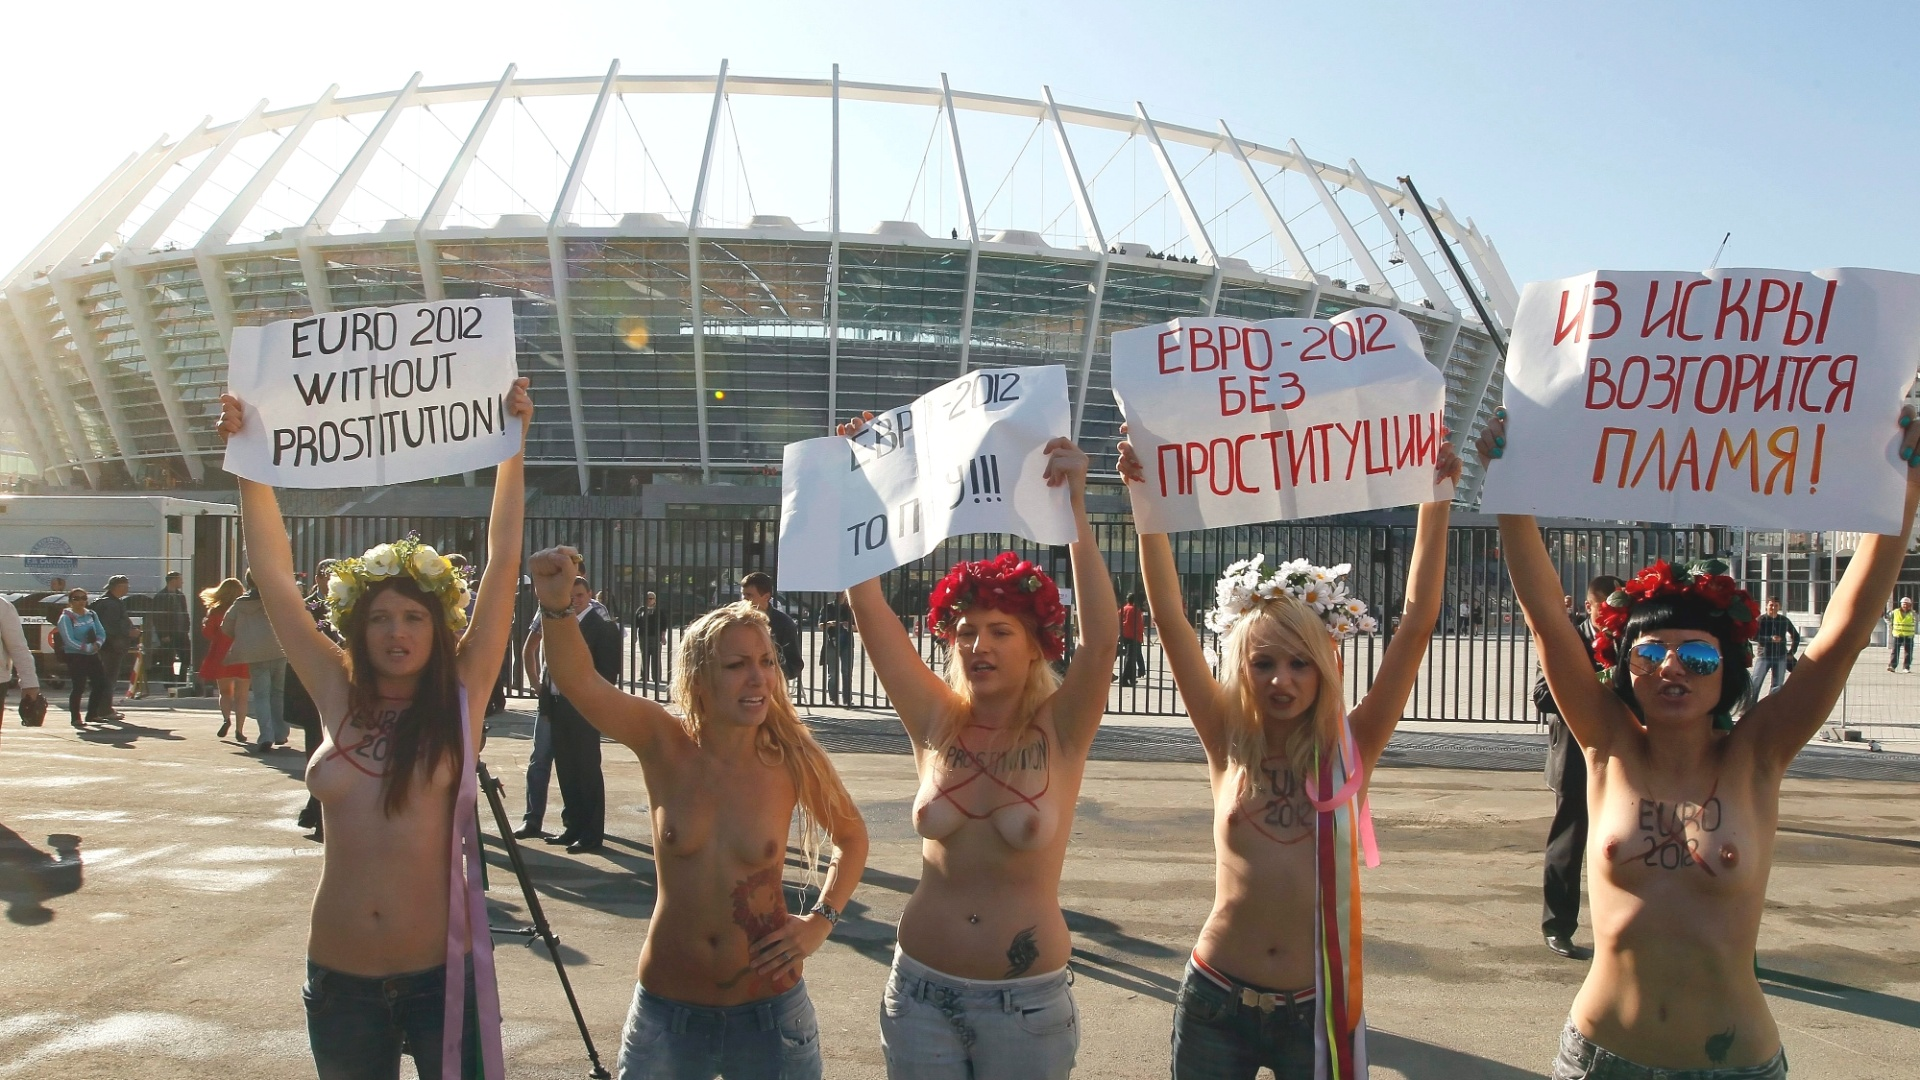 Ativistas do grupo feminista Femen fazem protesto em frente ao estdio Olmpico, em Kiev (Ucrnia). Elas pedem uma Eurocopa-2012 sem prostituio